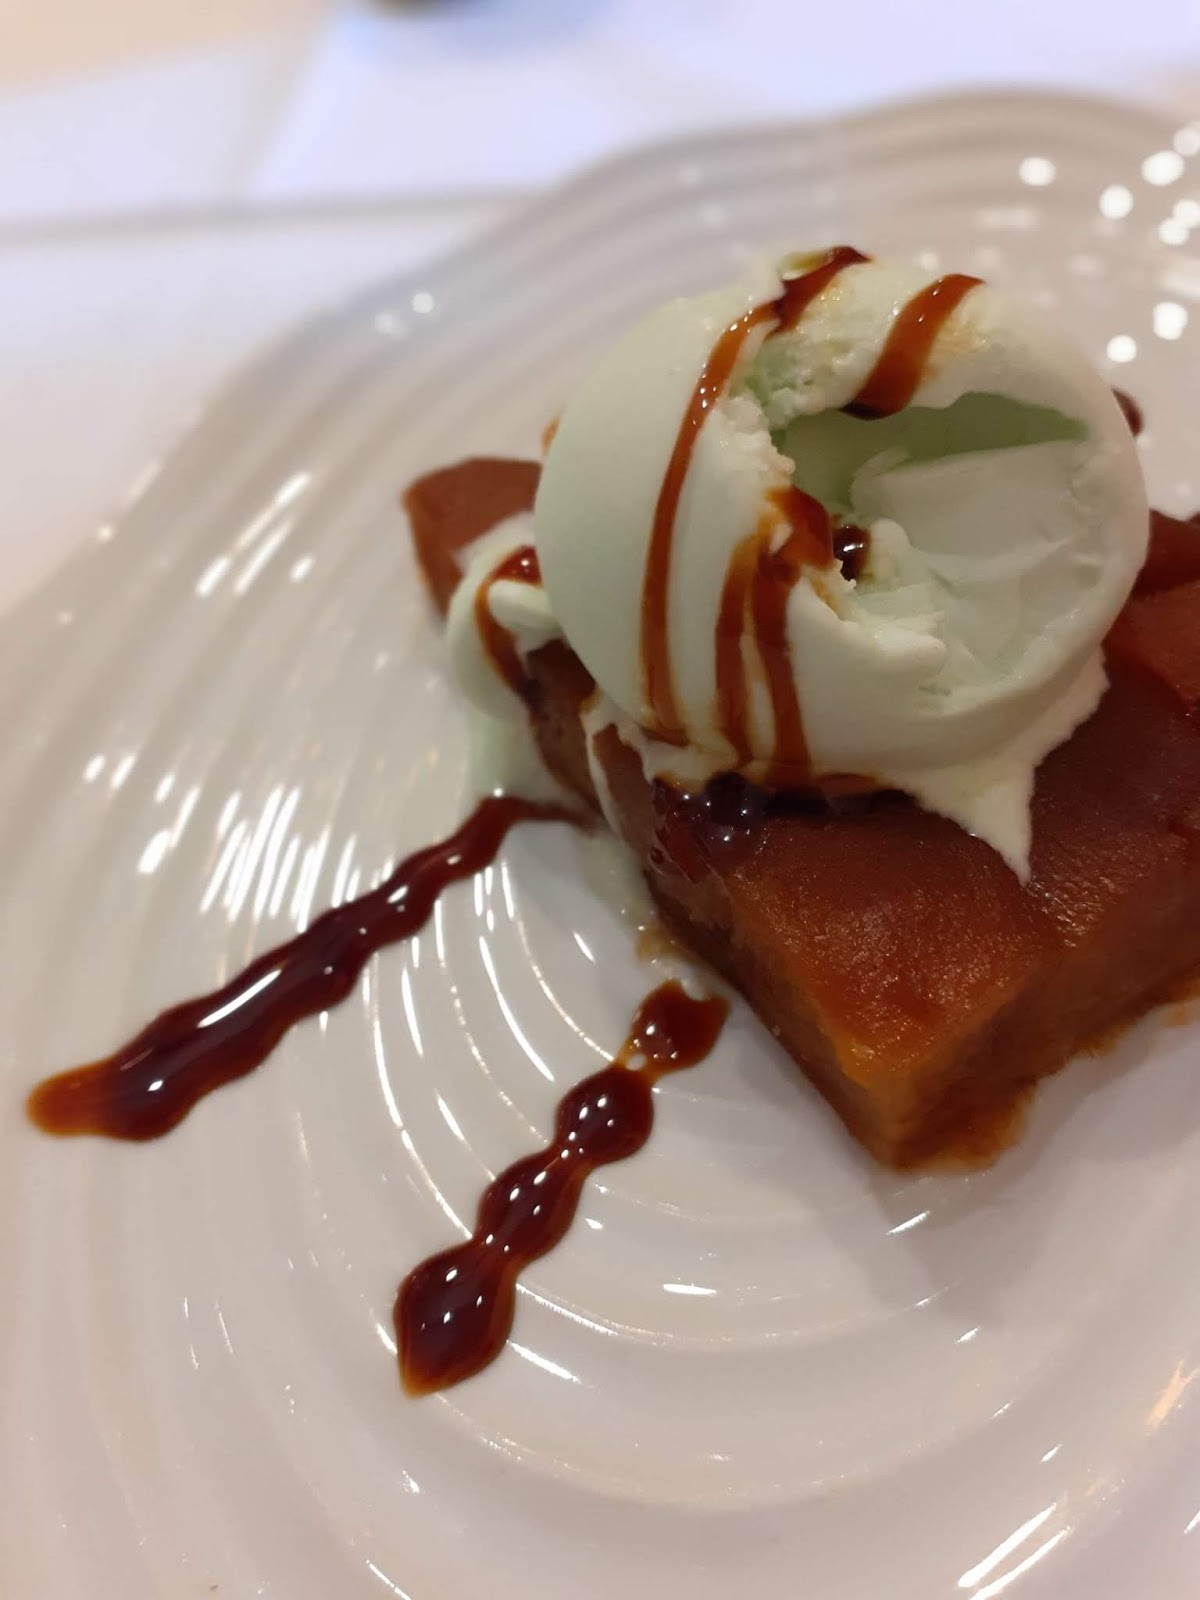 Tatin with icecream - Can Marc restaurant - Palautordera